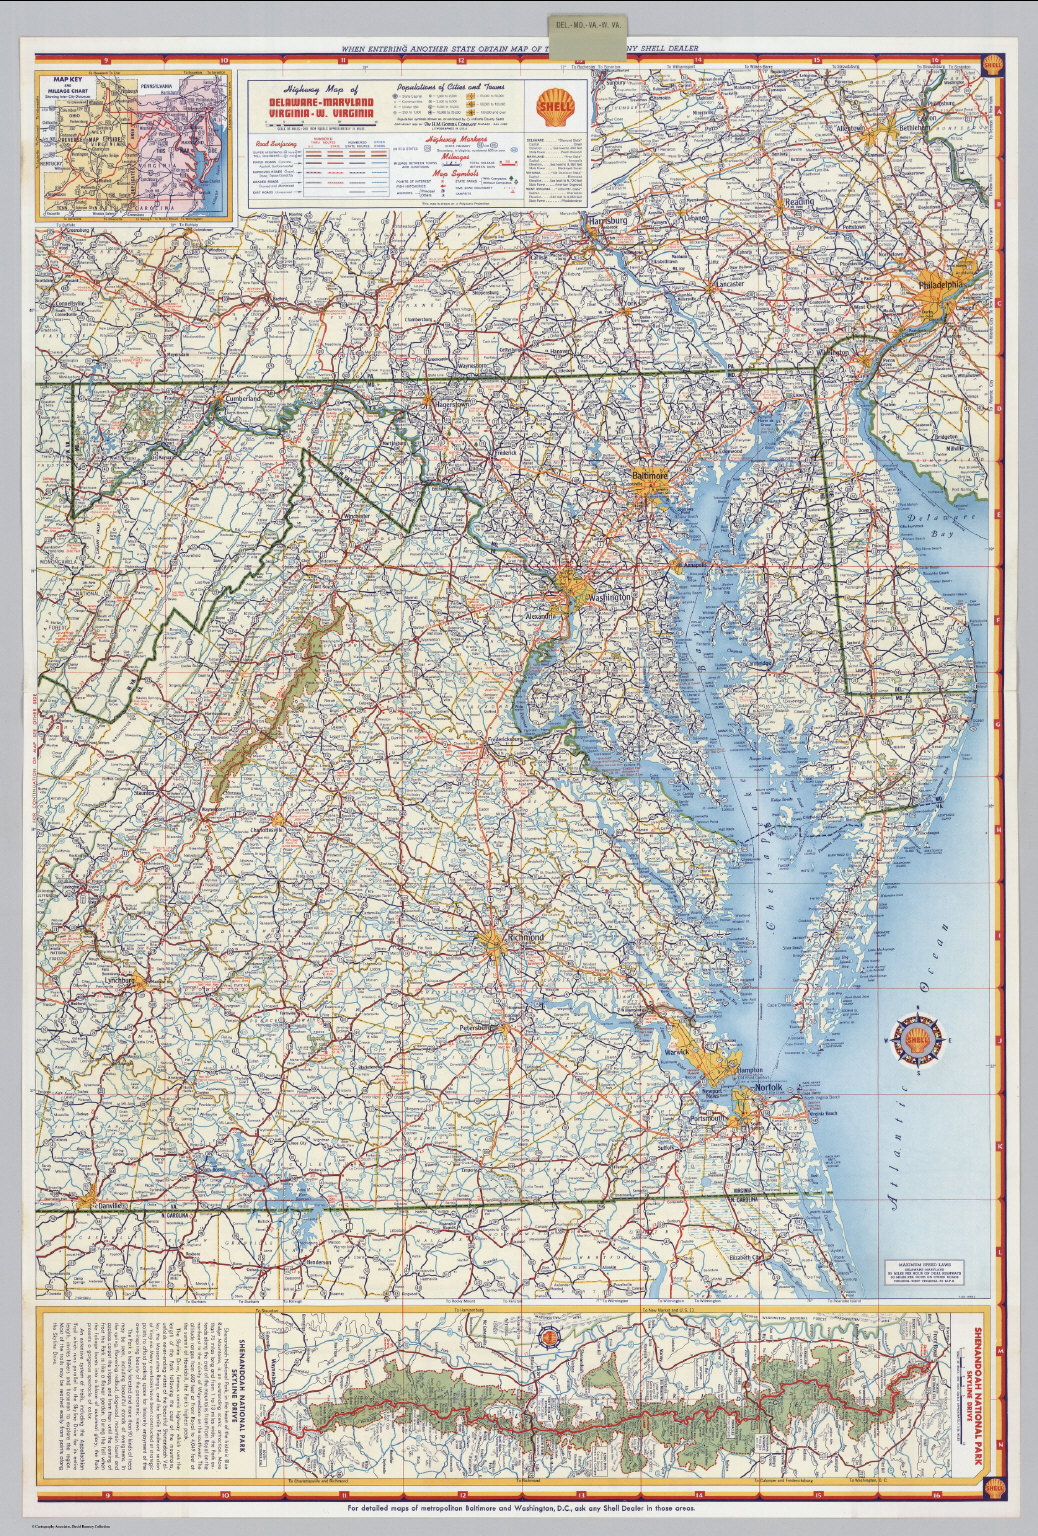 Shell Highway Map Of Delaware Maryland Virginia W Virginia - Map of delaware